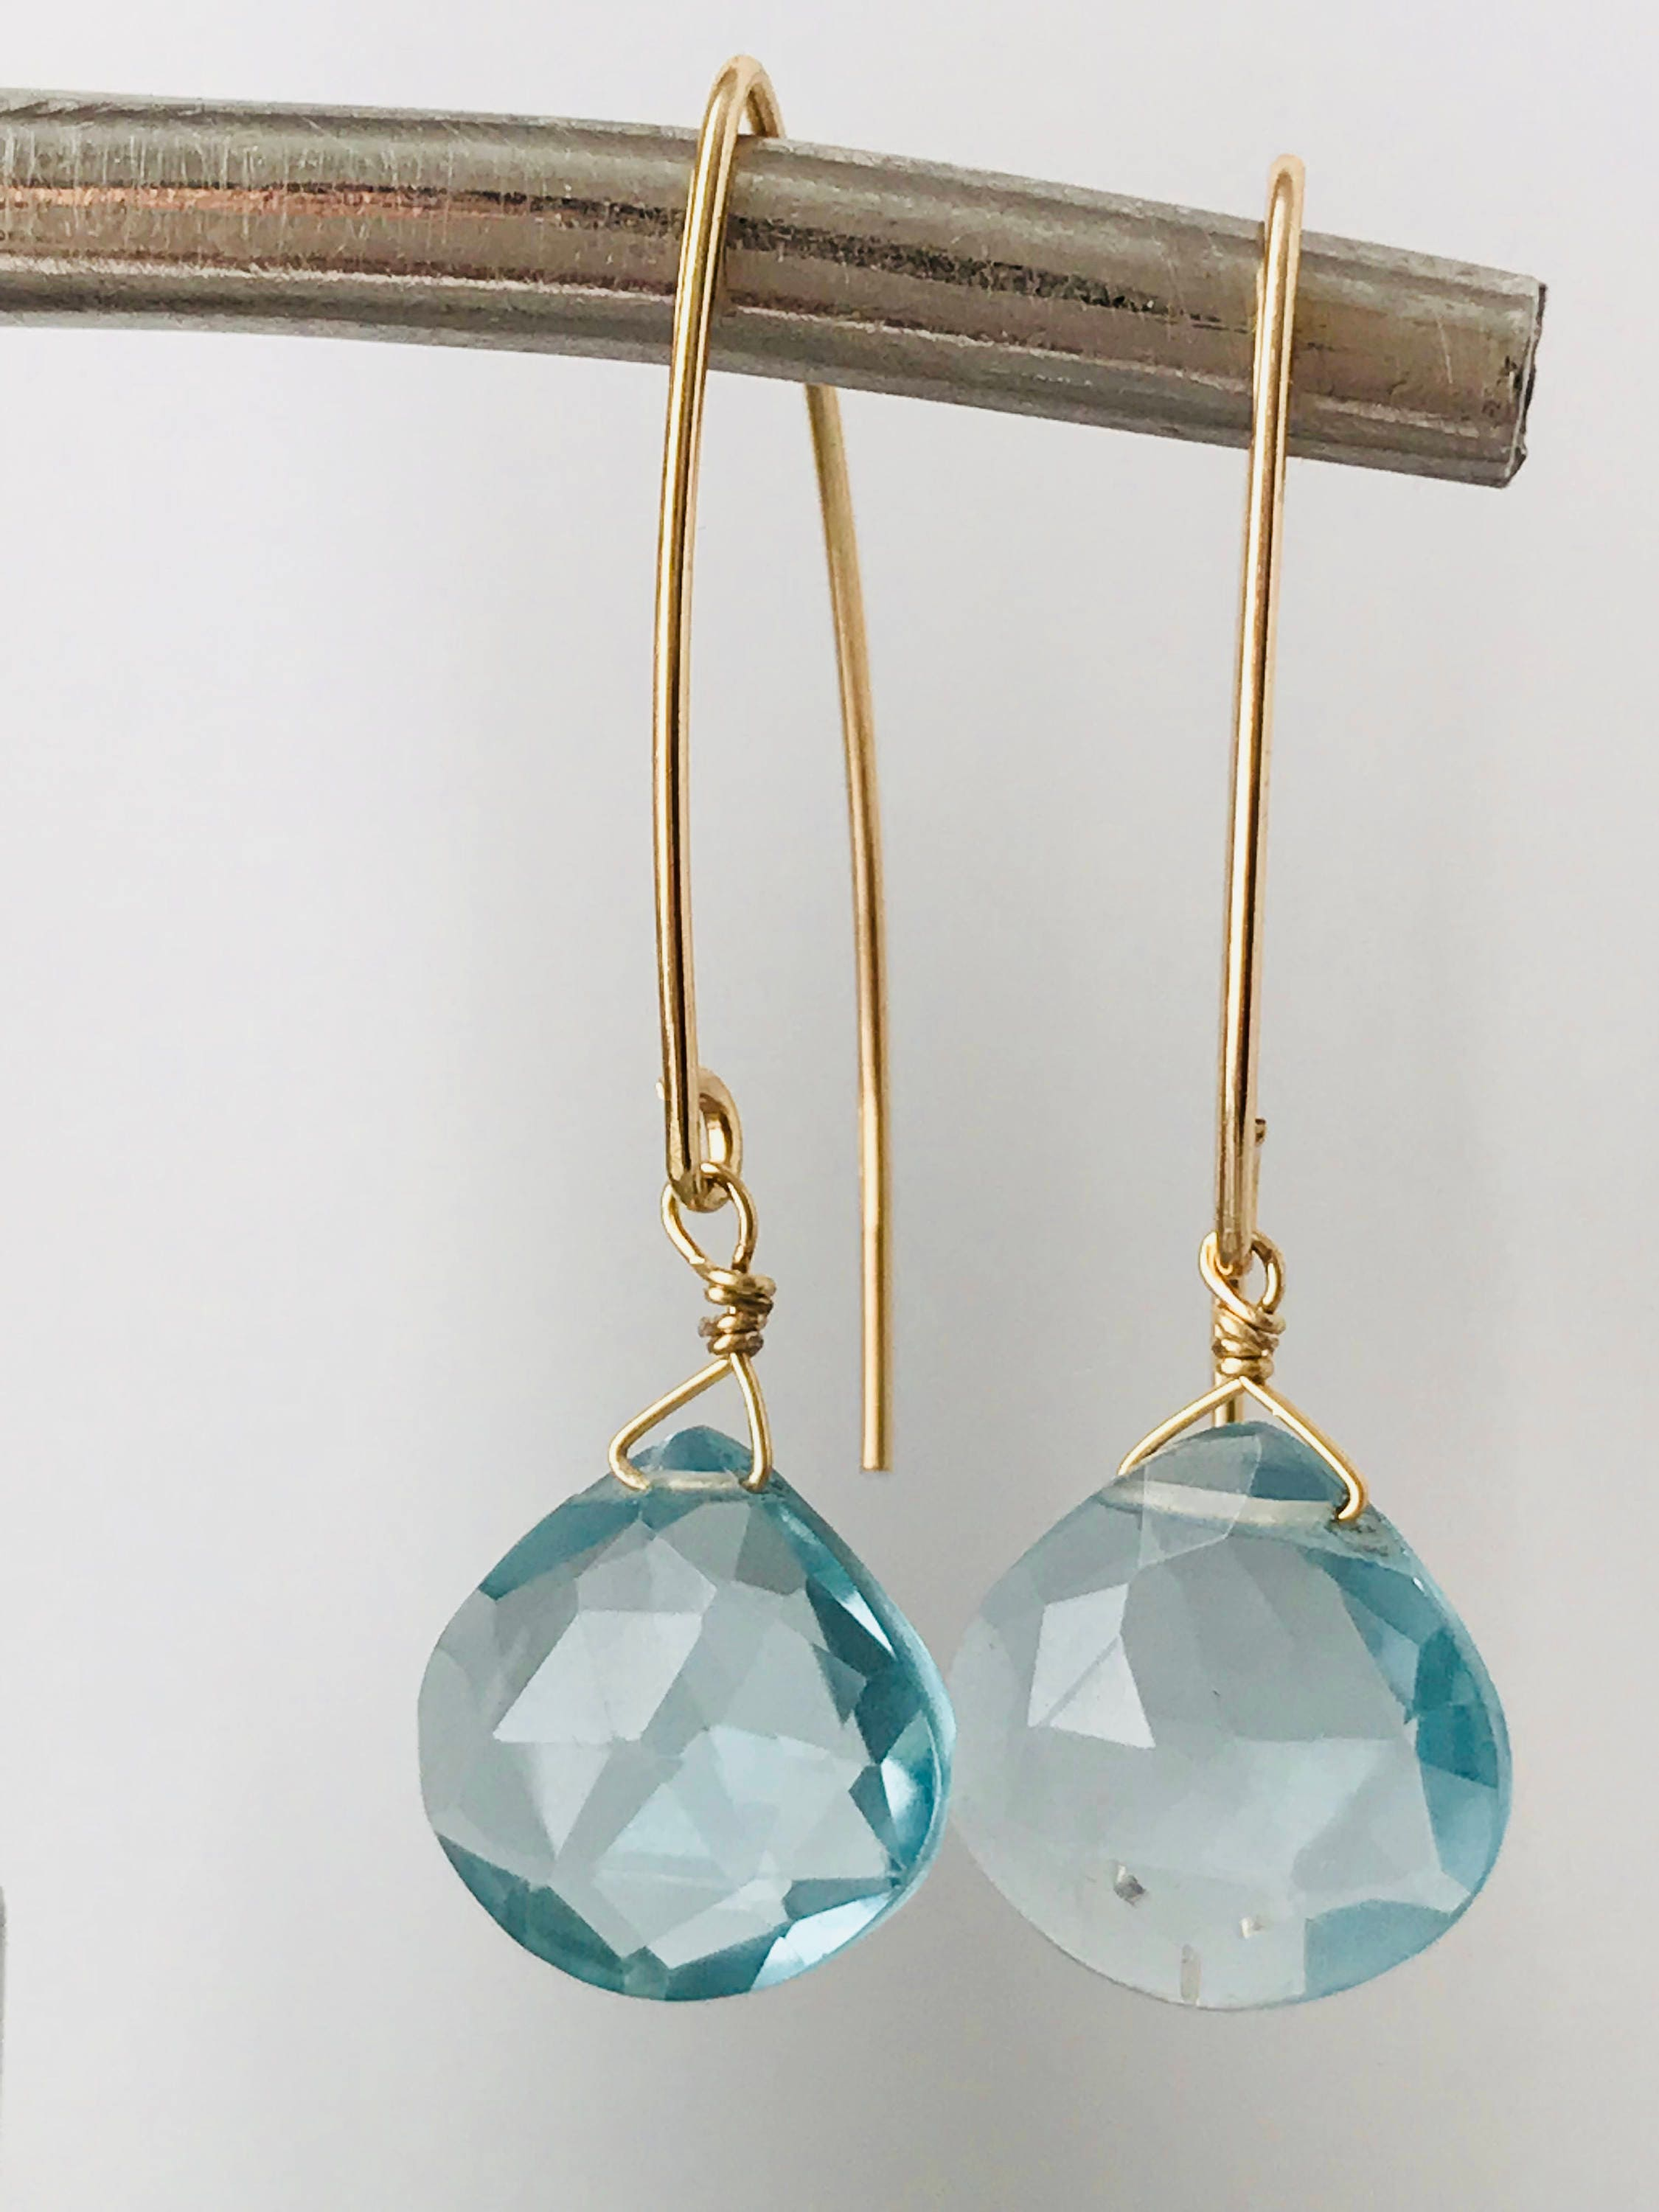 and labradorite exquisite turquoise exotic charming delightful listing il upscale attractive earrings aquamarine lovely genuine appealing fullxfull